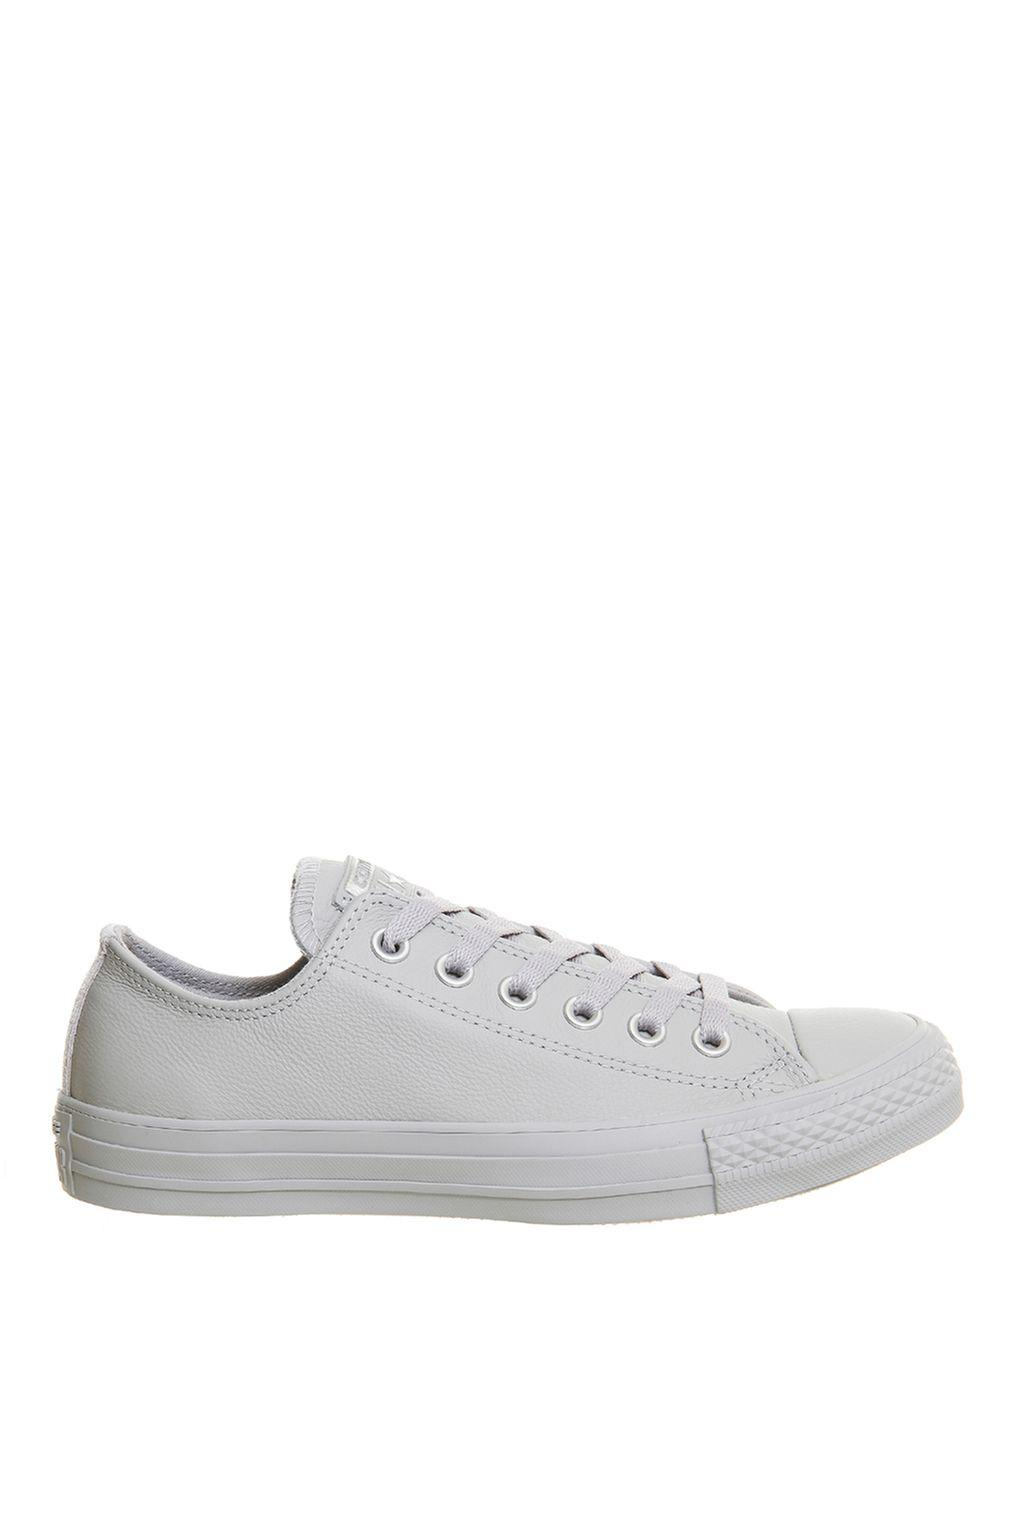 dc6b18b7472cce Converse All Star Low Top Trainers By Converse in Gray - Lyst